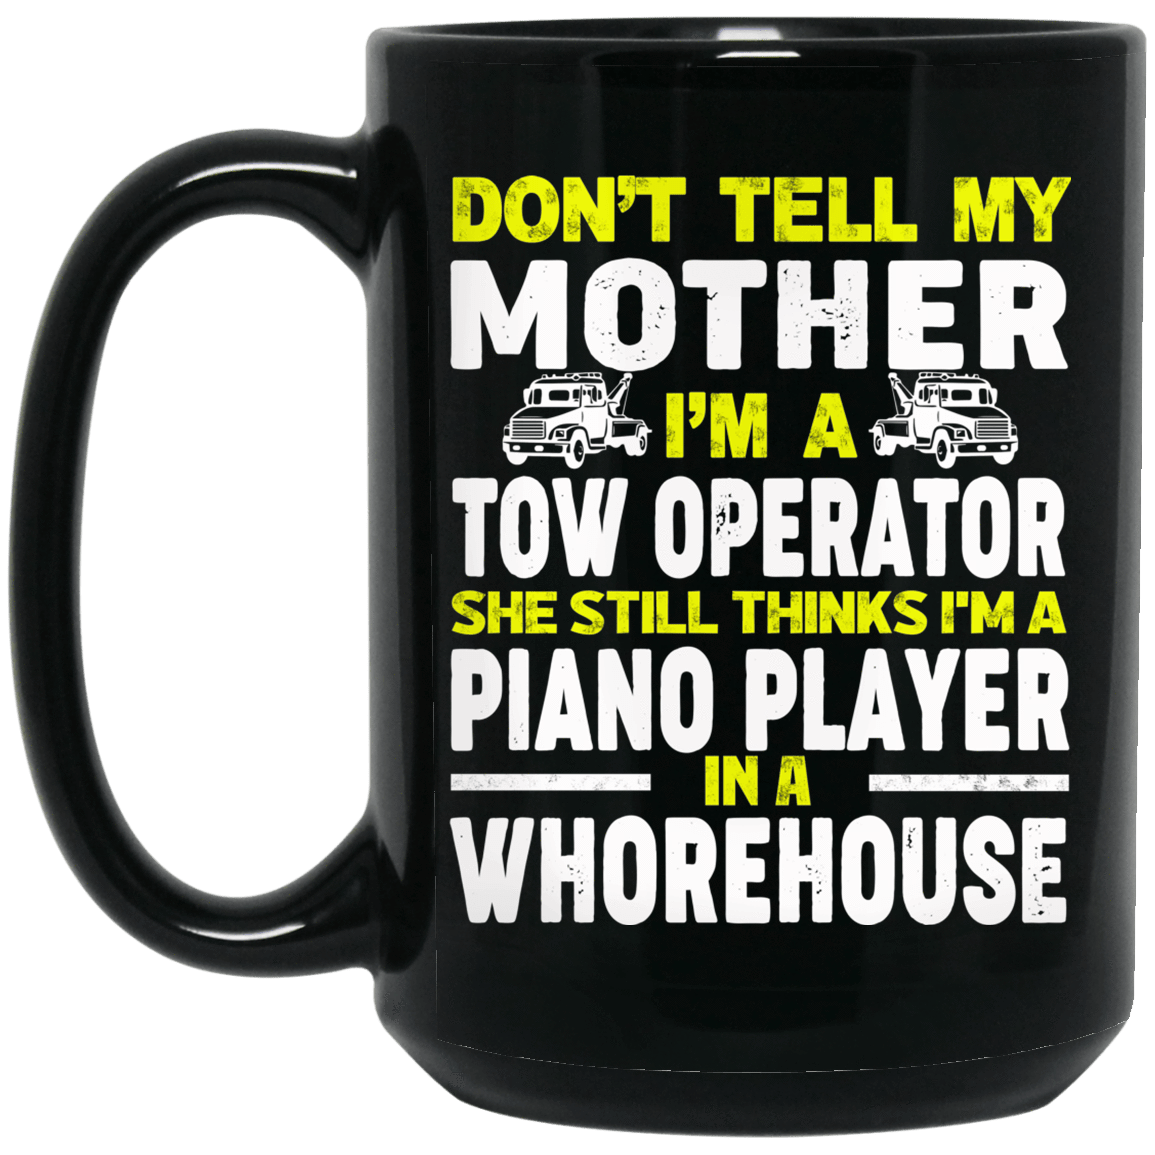 Don't Tell My Mother I'm A Tow Operator She Still Thinks I'm A Piano Player In A Whorehouse Mug 1066-10182-74095370-49311 - Tee Ript